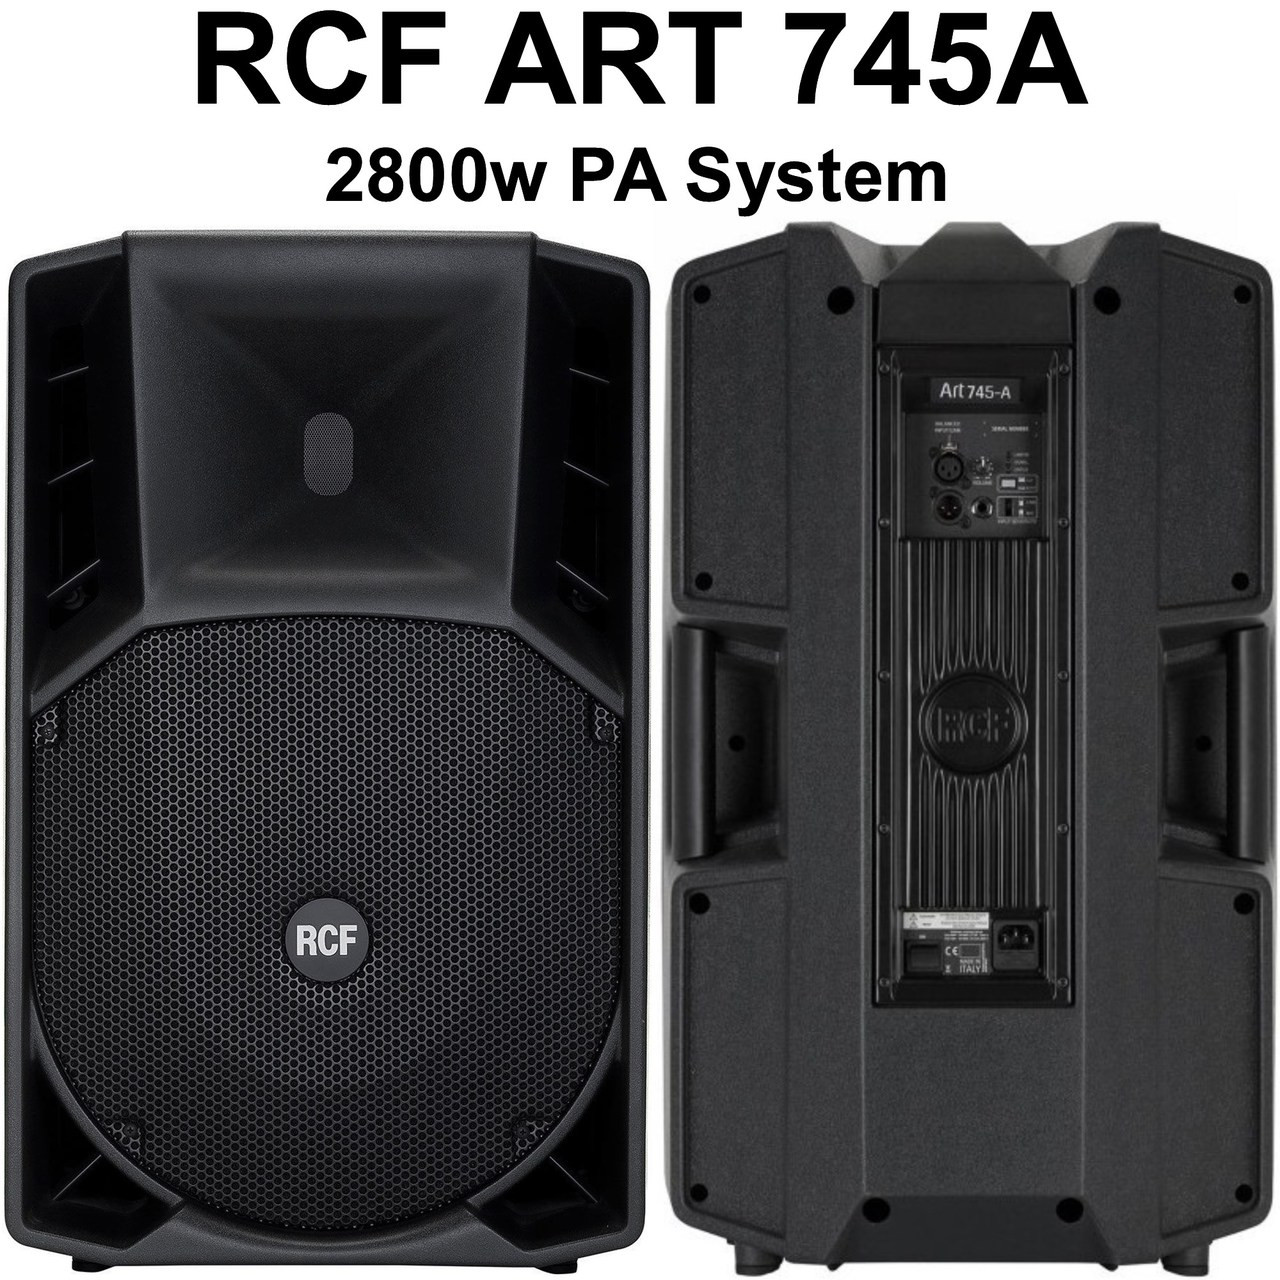 RCF ART 745-A 2800w Active PA System Speaker Pair $150 Instant Coupon Use  Promo Code: $150-OFF